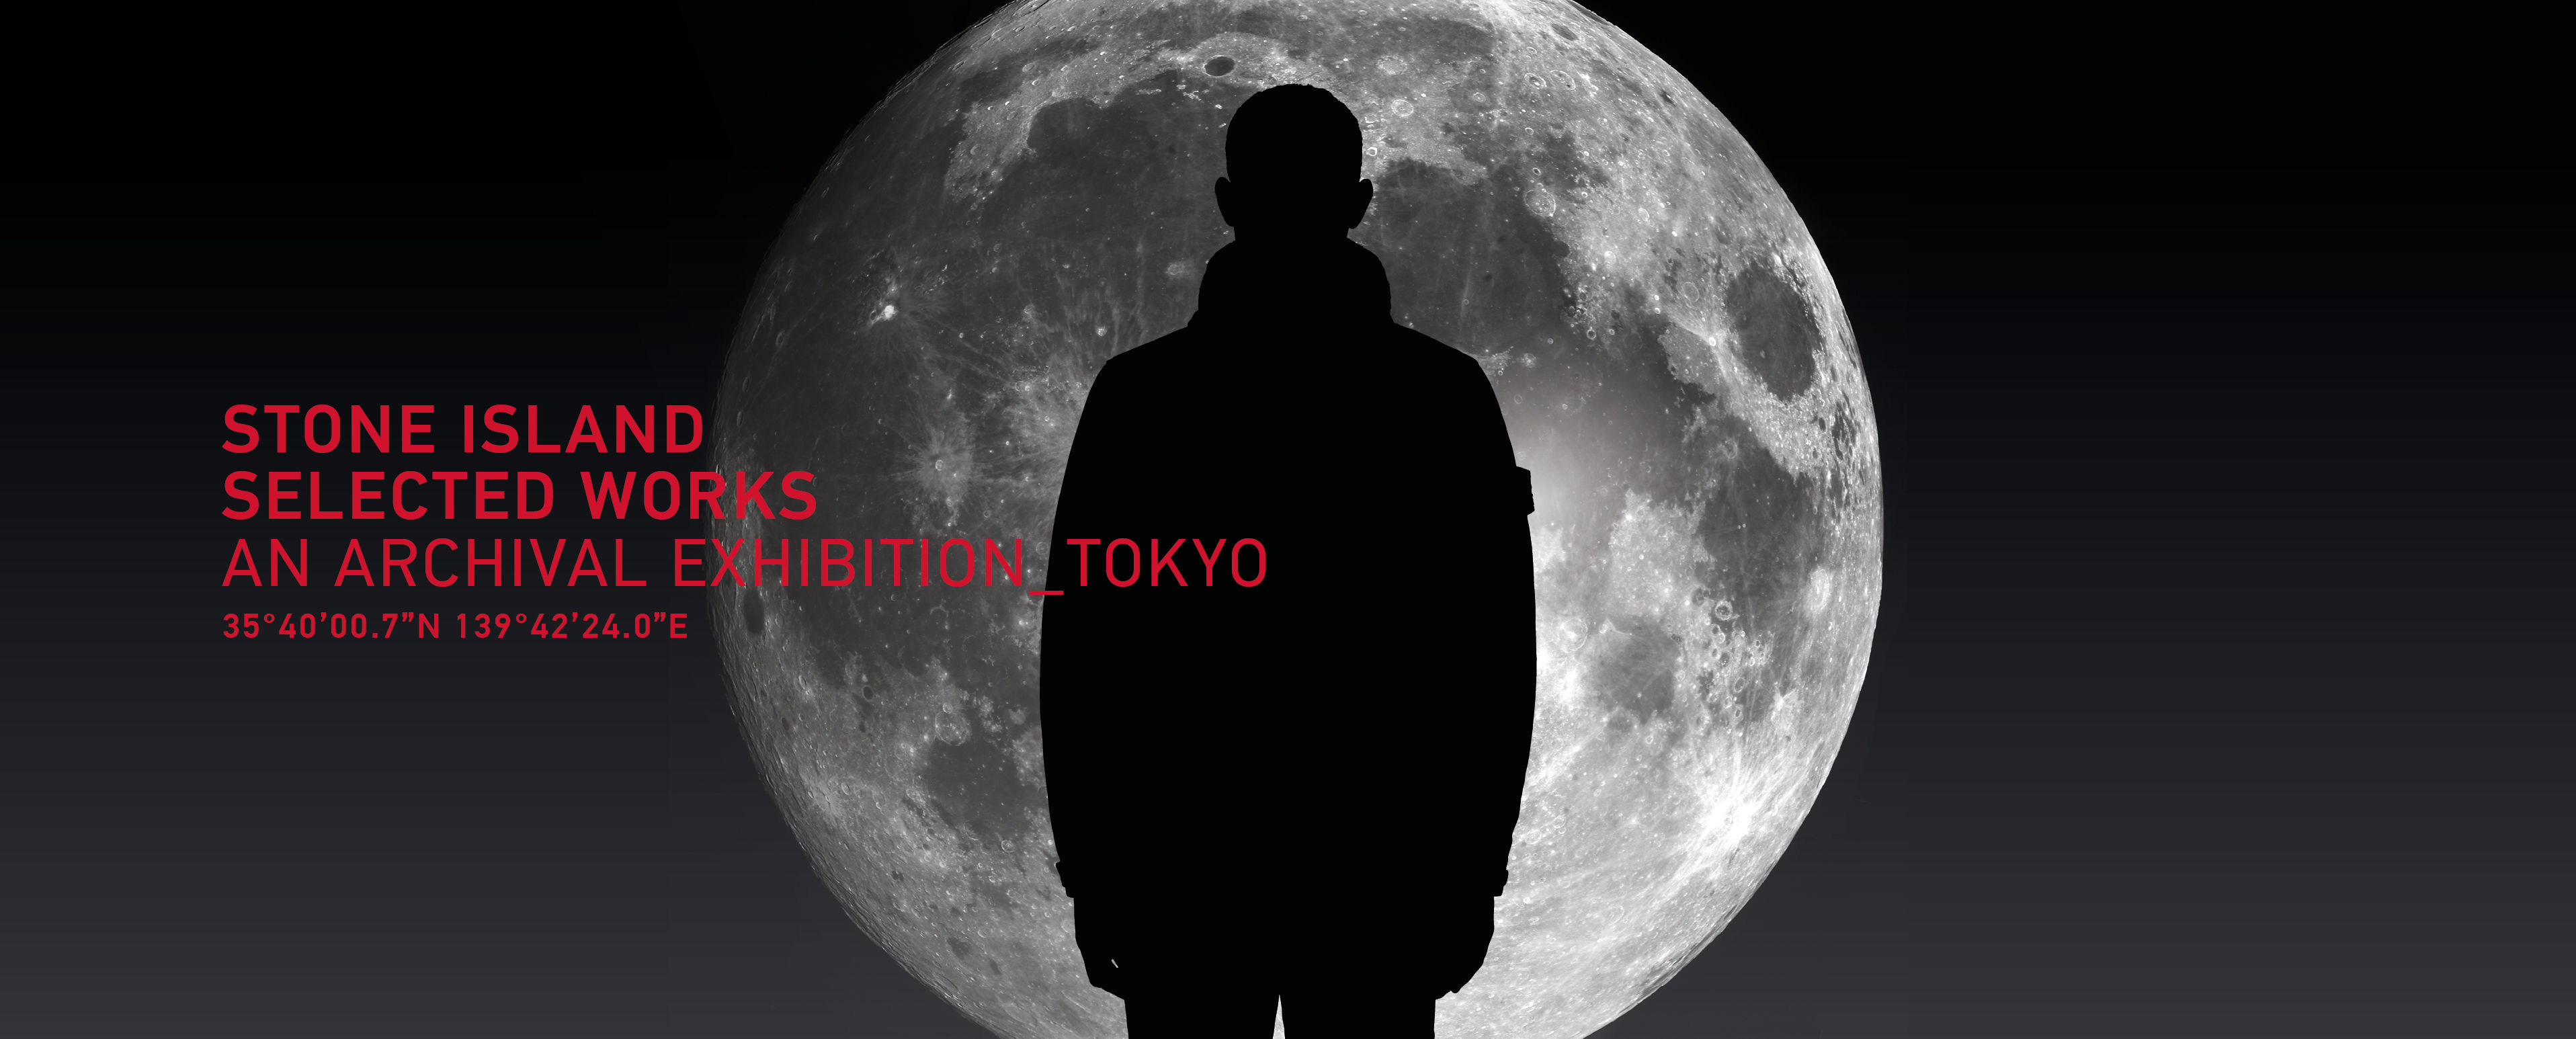 Model wearing a sportswear jacket, standing fully silhouetted against the moon